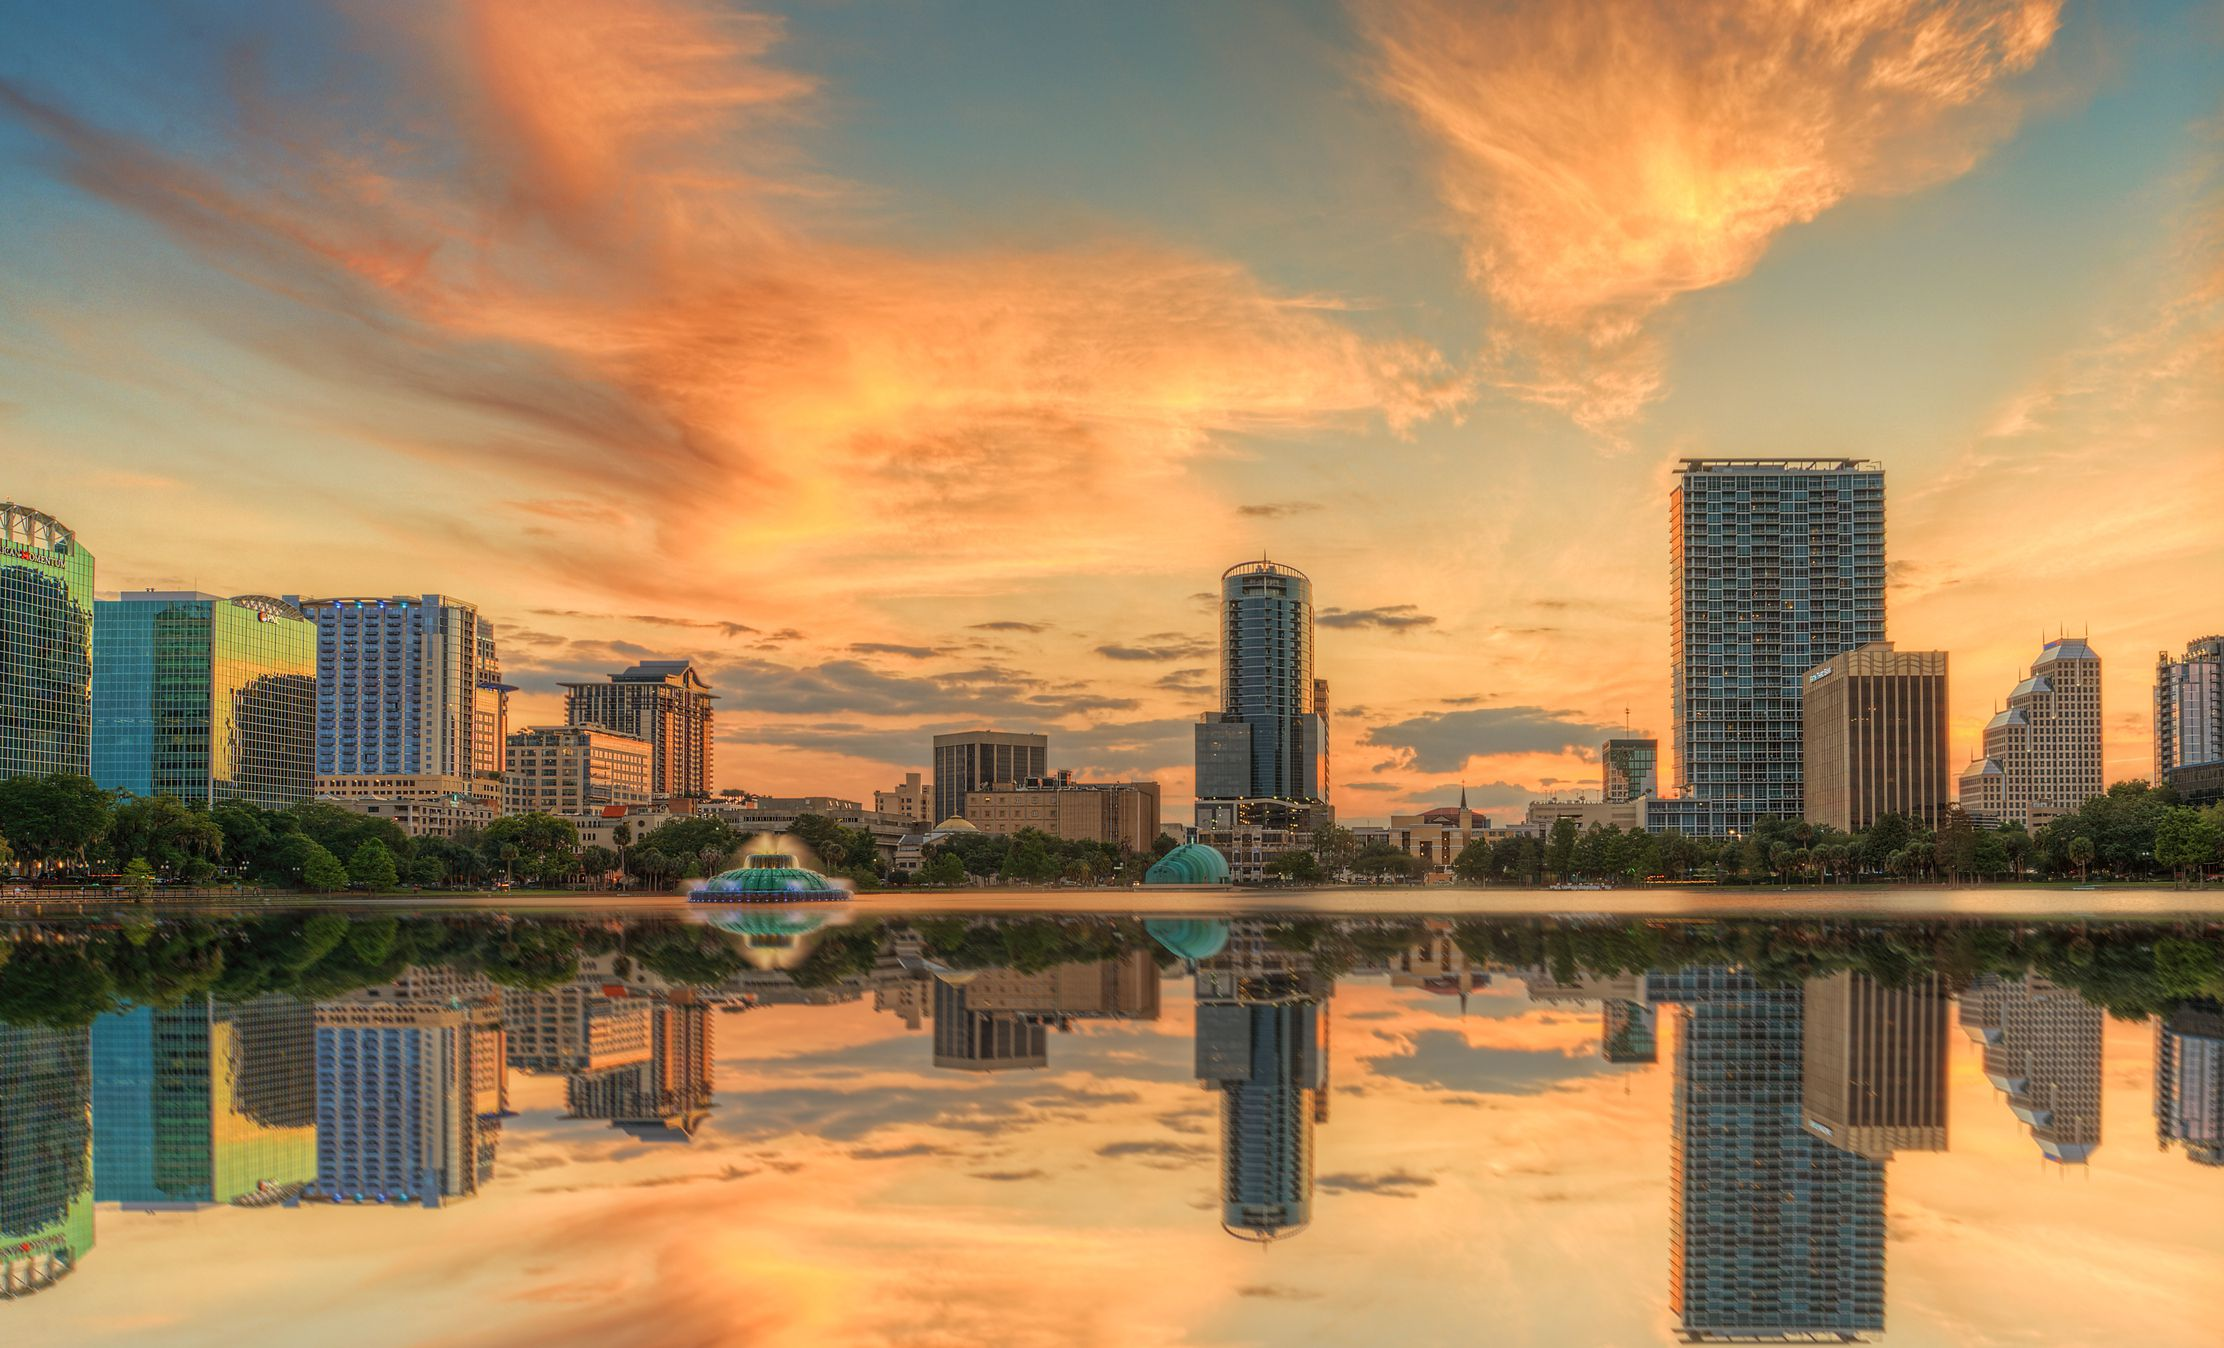 The Top 22 Things to Do in Orlando